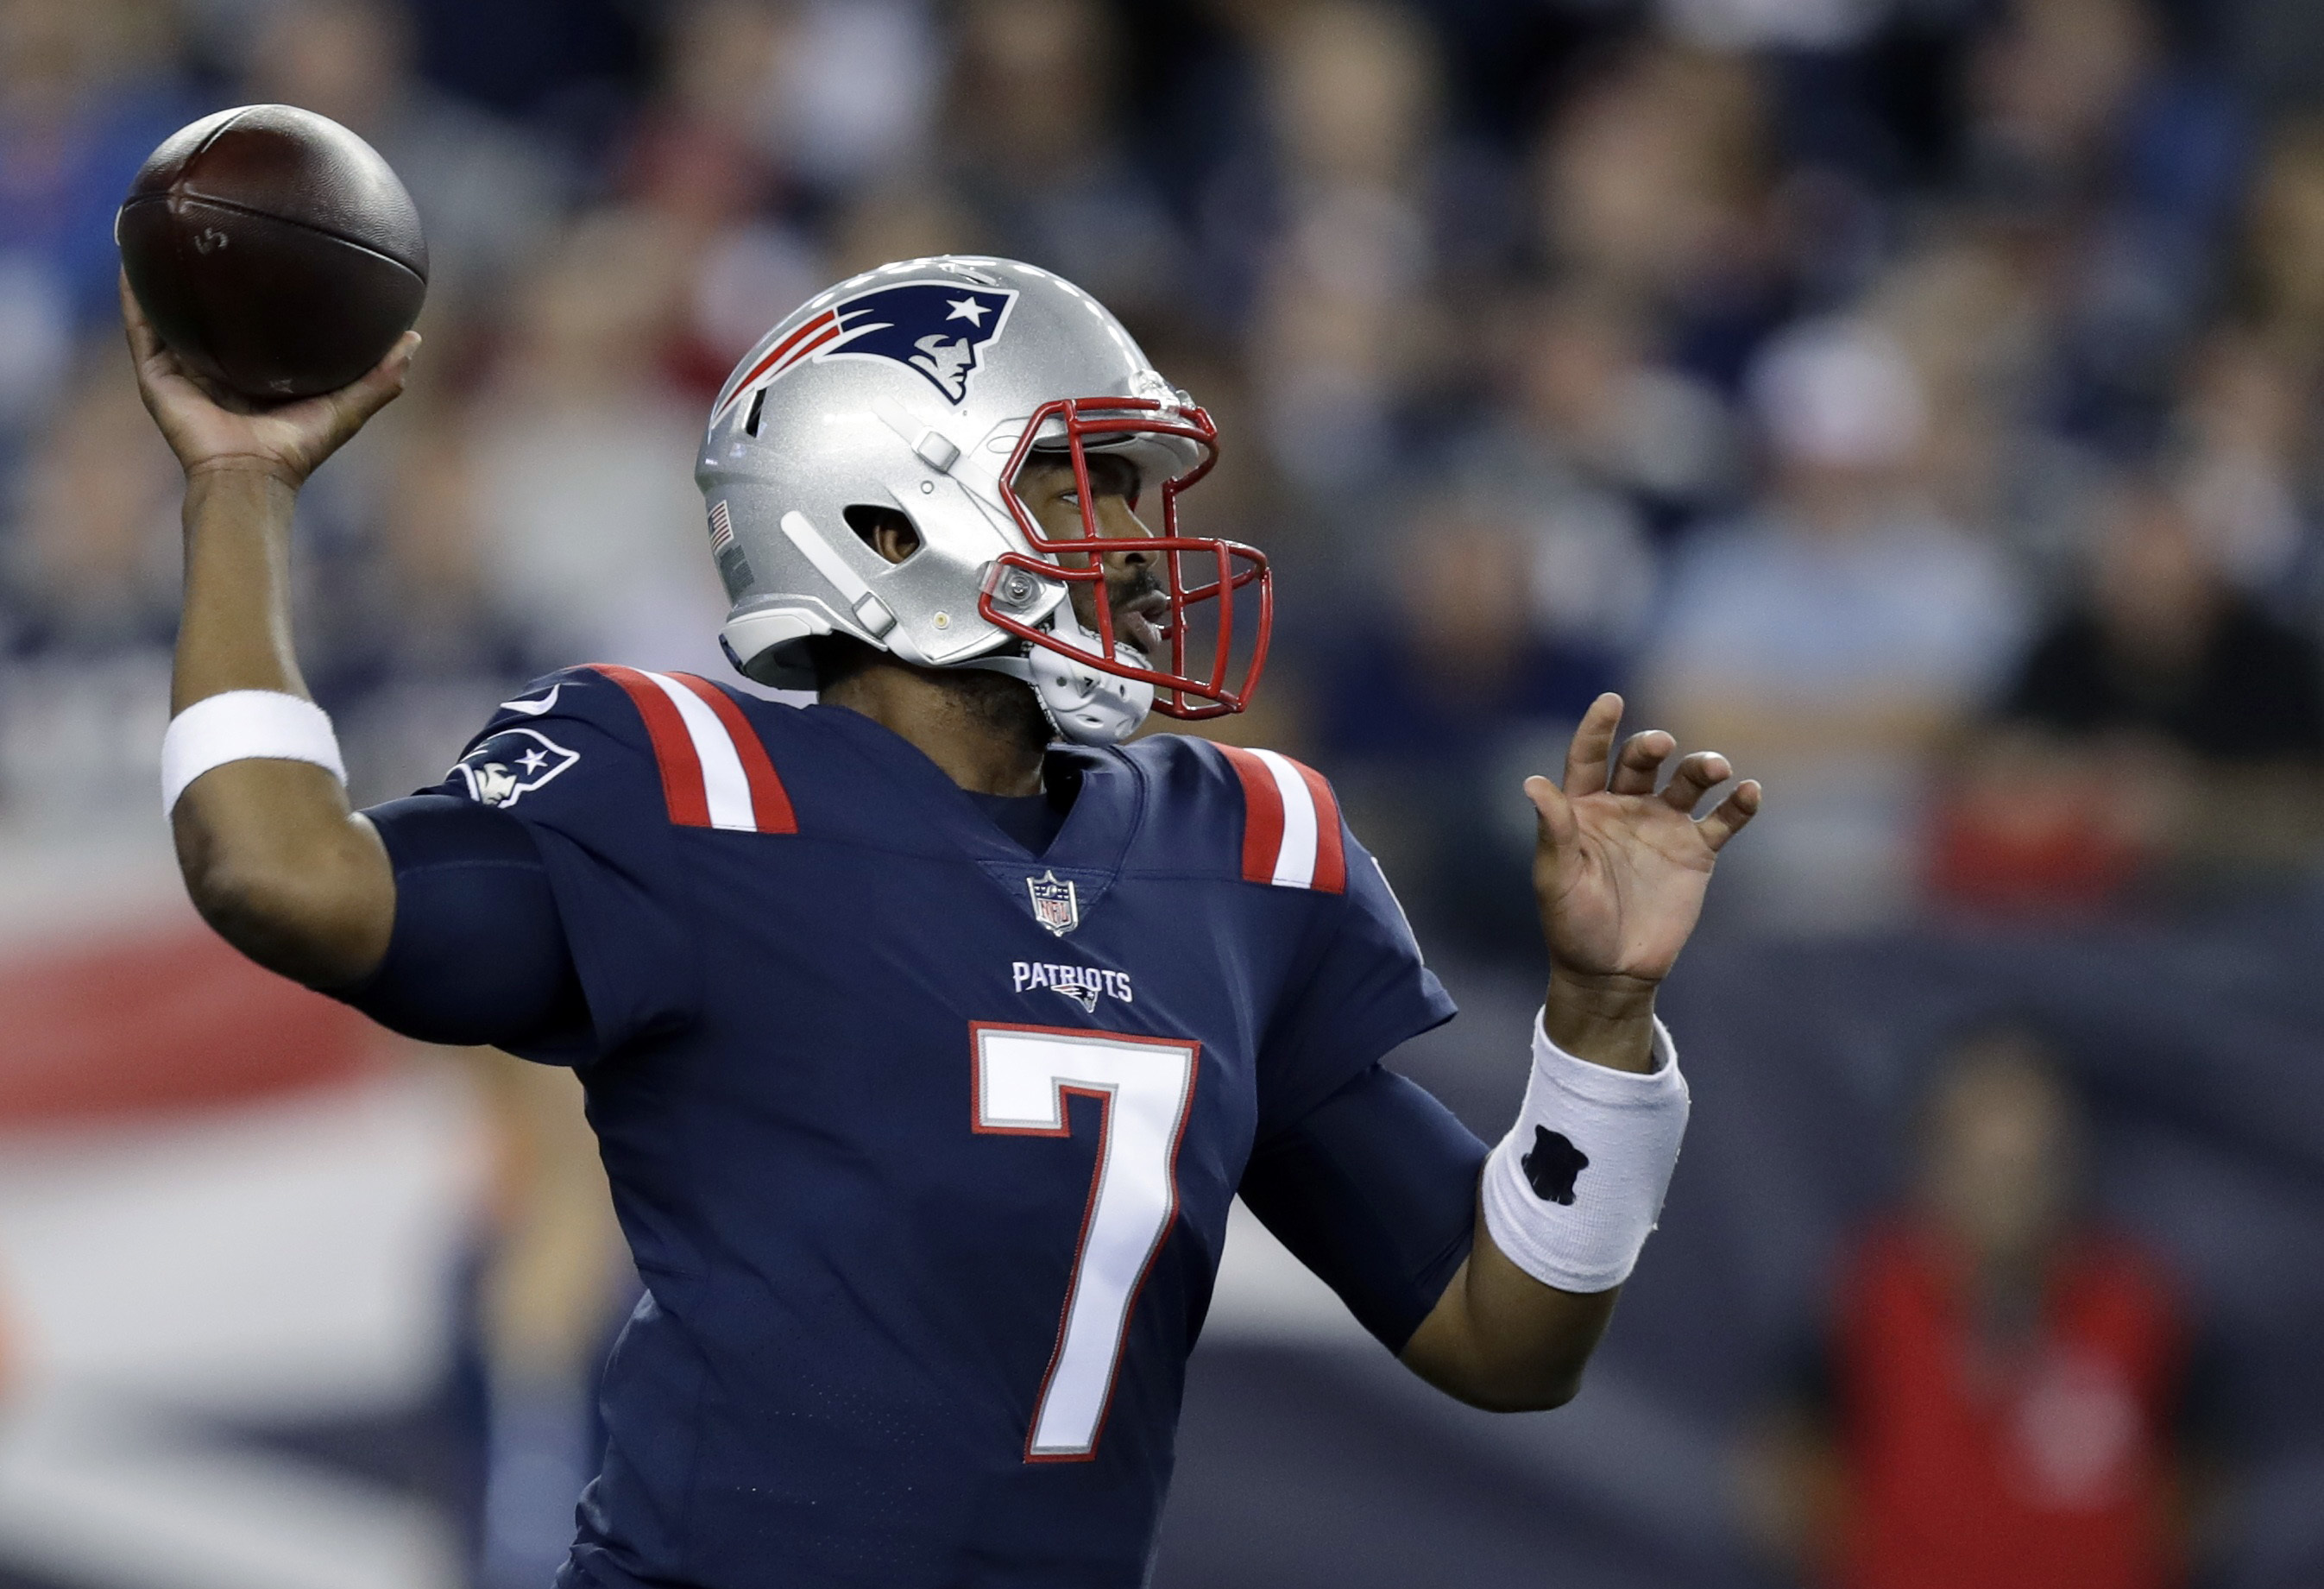 New England Patriots quarterback Jacoby Brissett (7) passes against the Houston Texans during the first half of an NFL football game Thursday, Sept. 22, 2016, in Foxborough, Mass. (AP Photo/Charles Krupa)